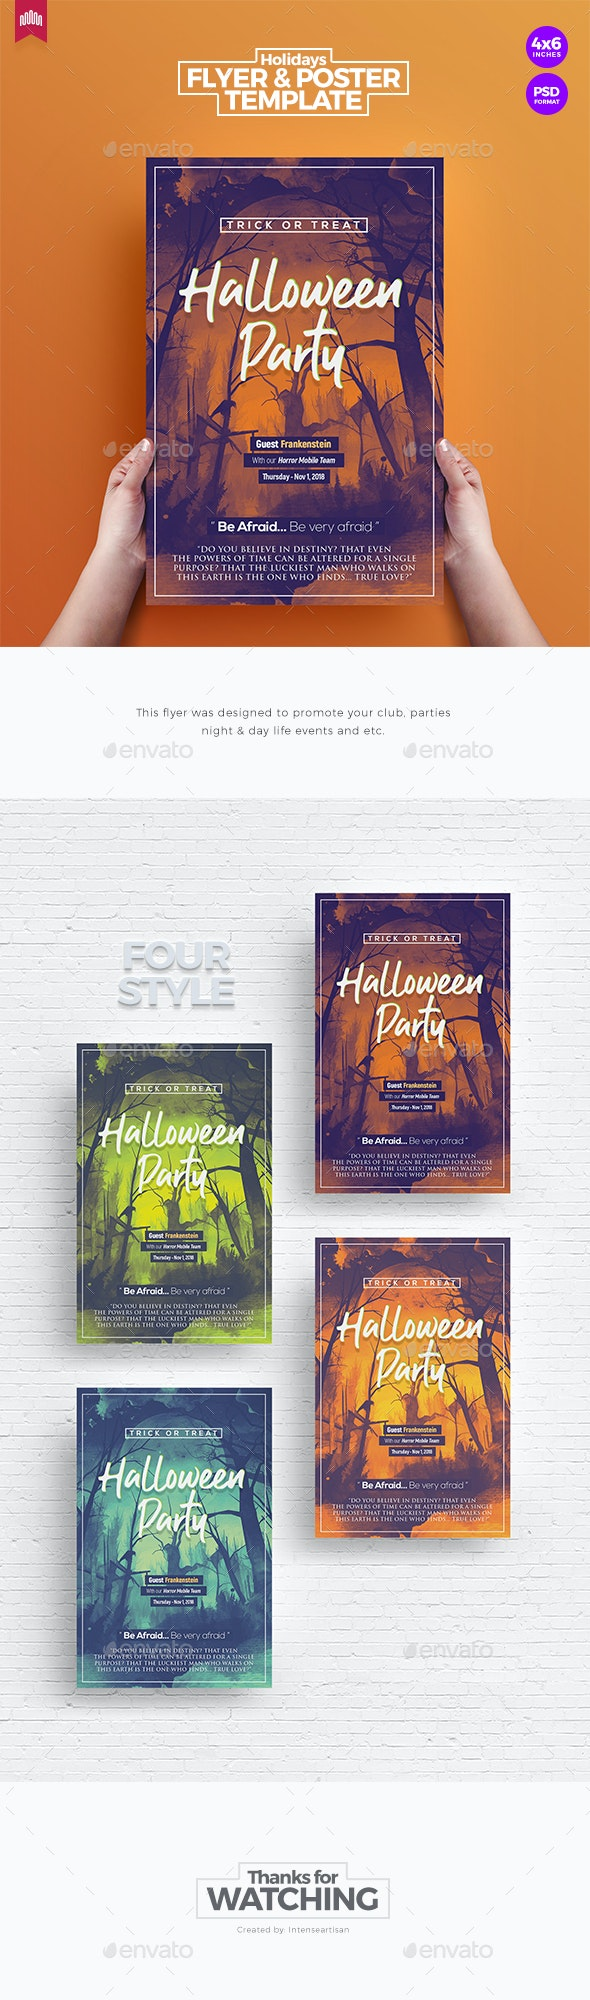 Halloween Party - Flyer Template - Holidays Events